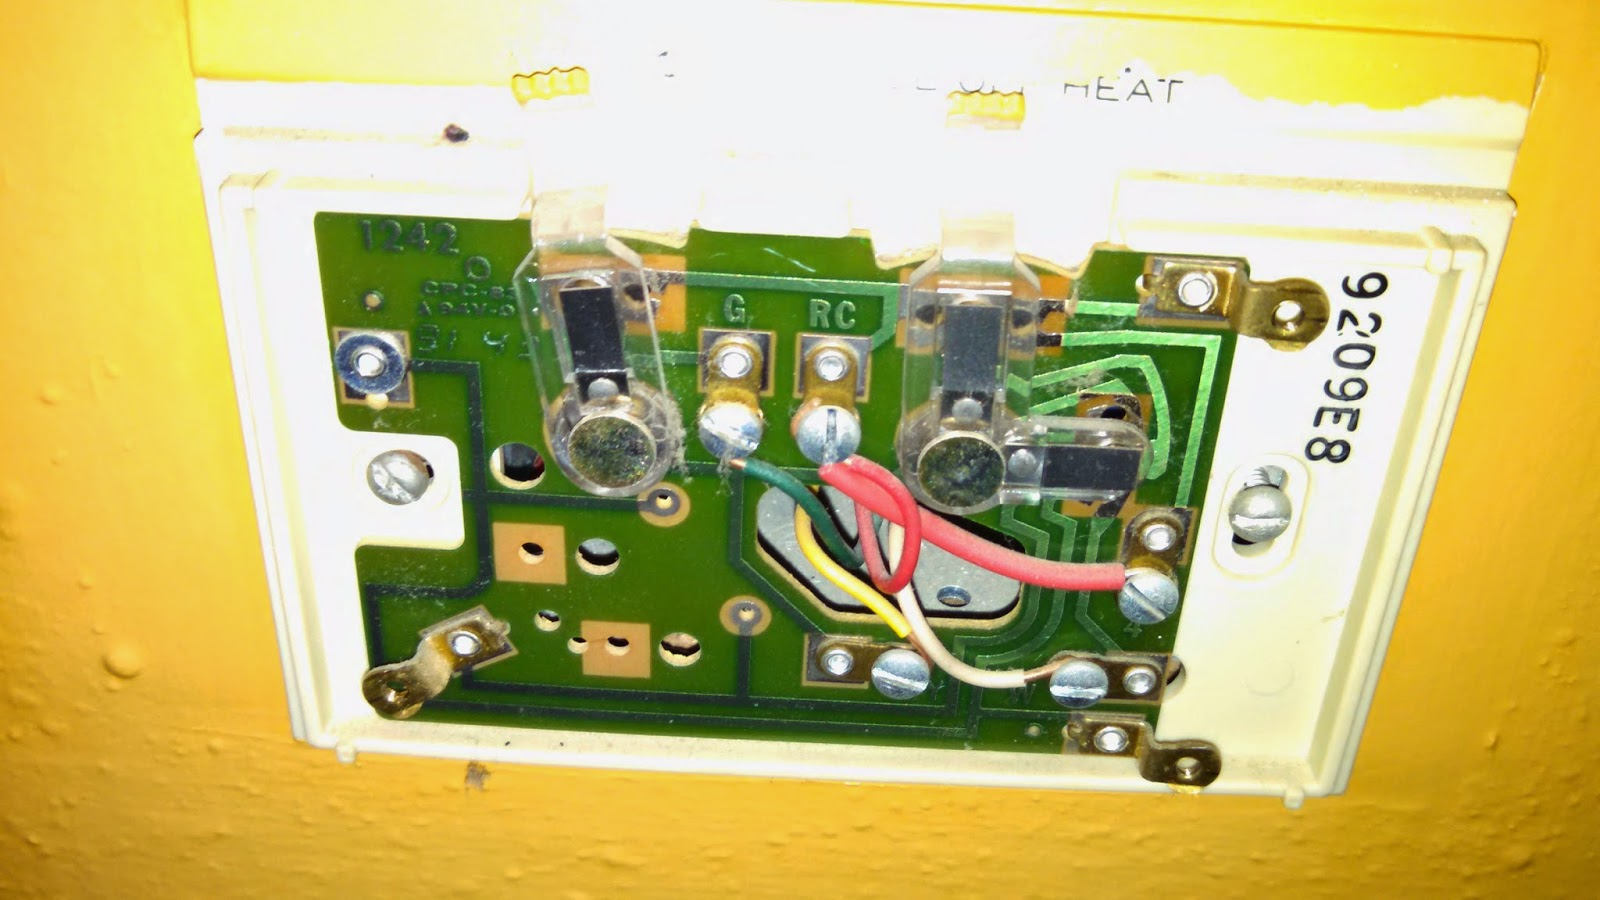 small resolution of circuit card and wire connections in old thermostat image source dr penny pincher